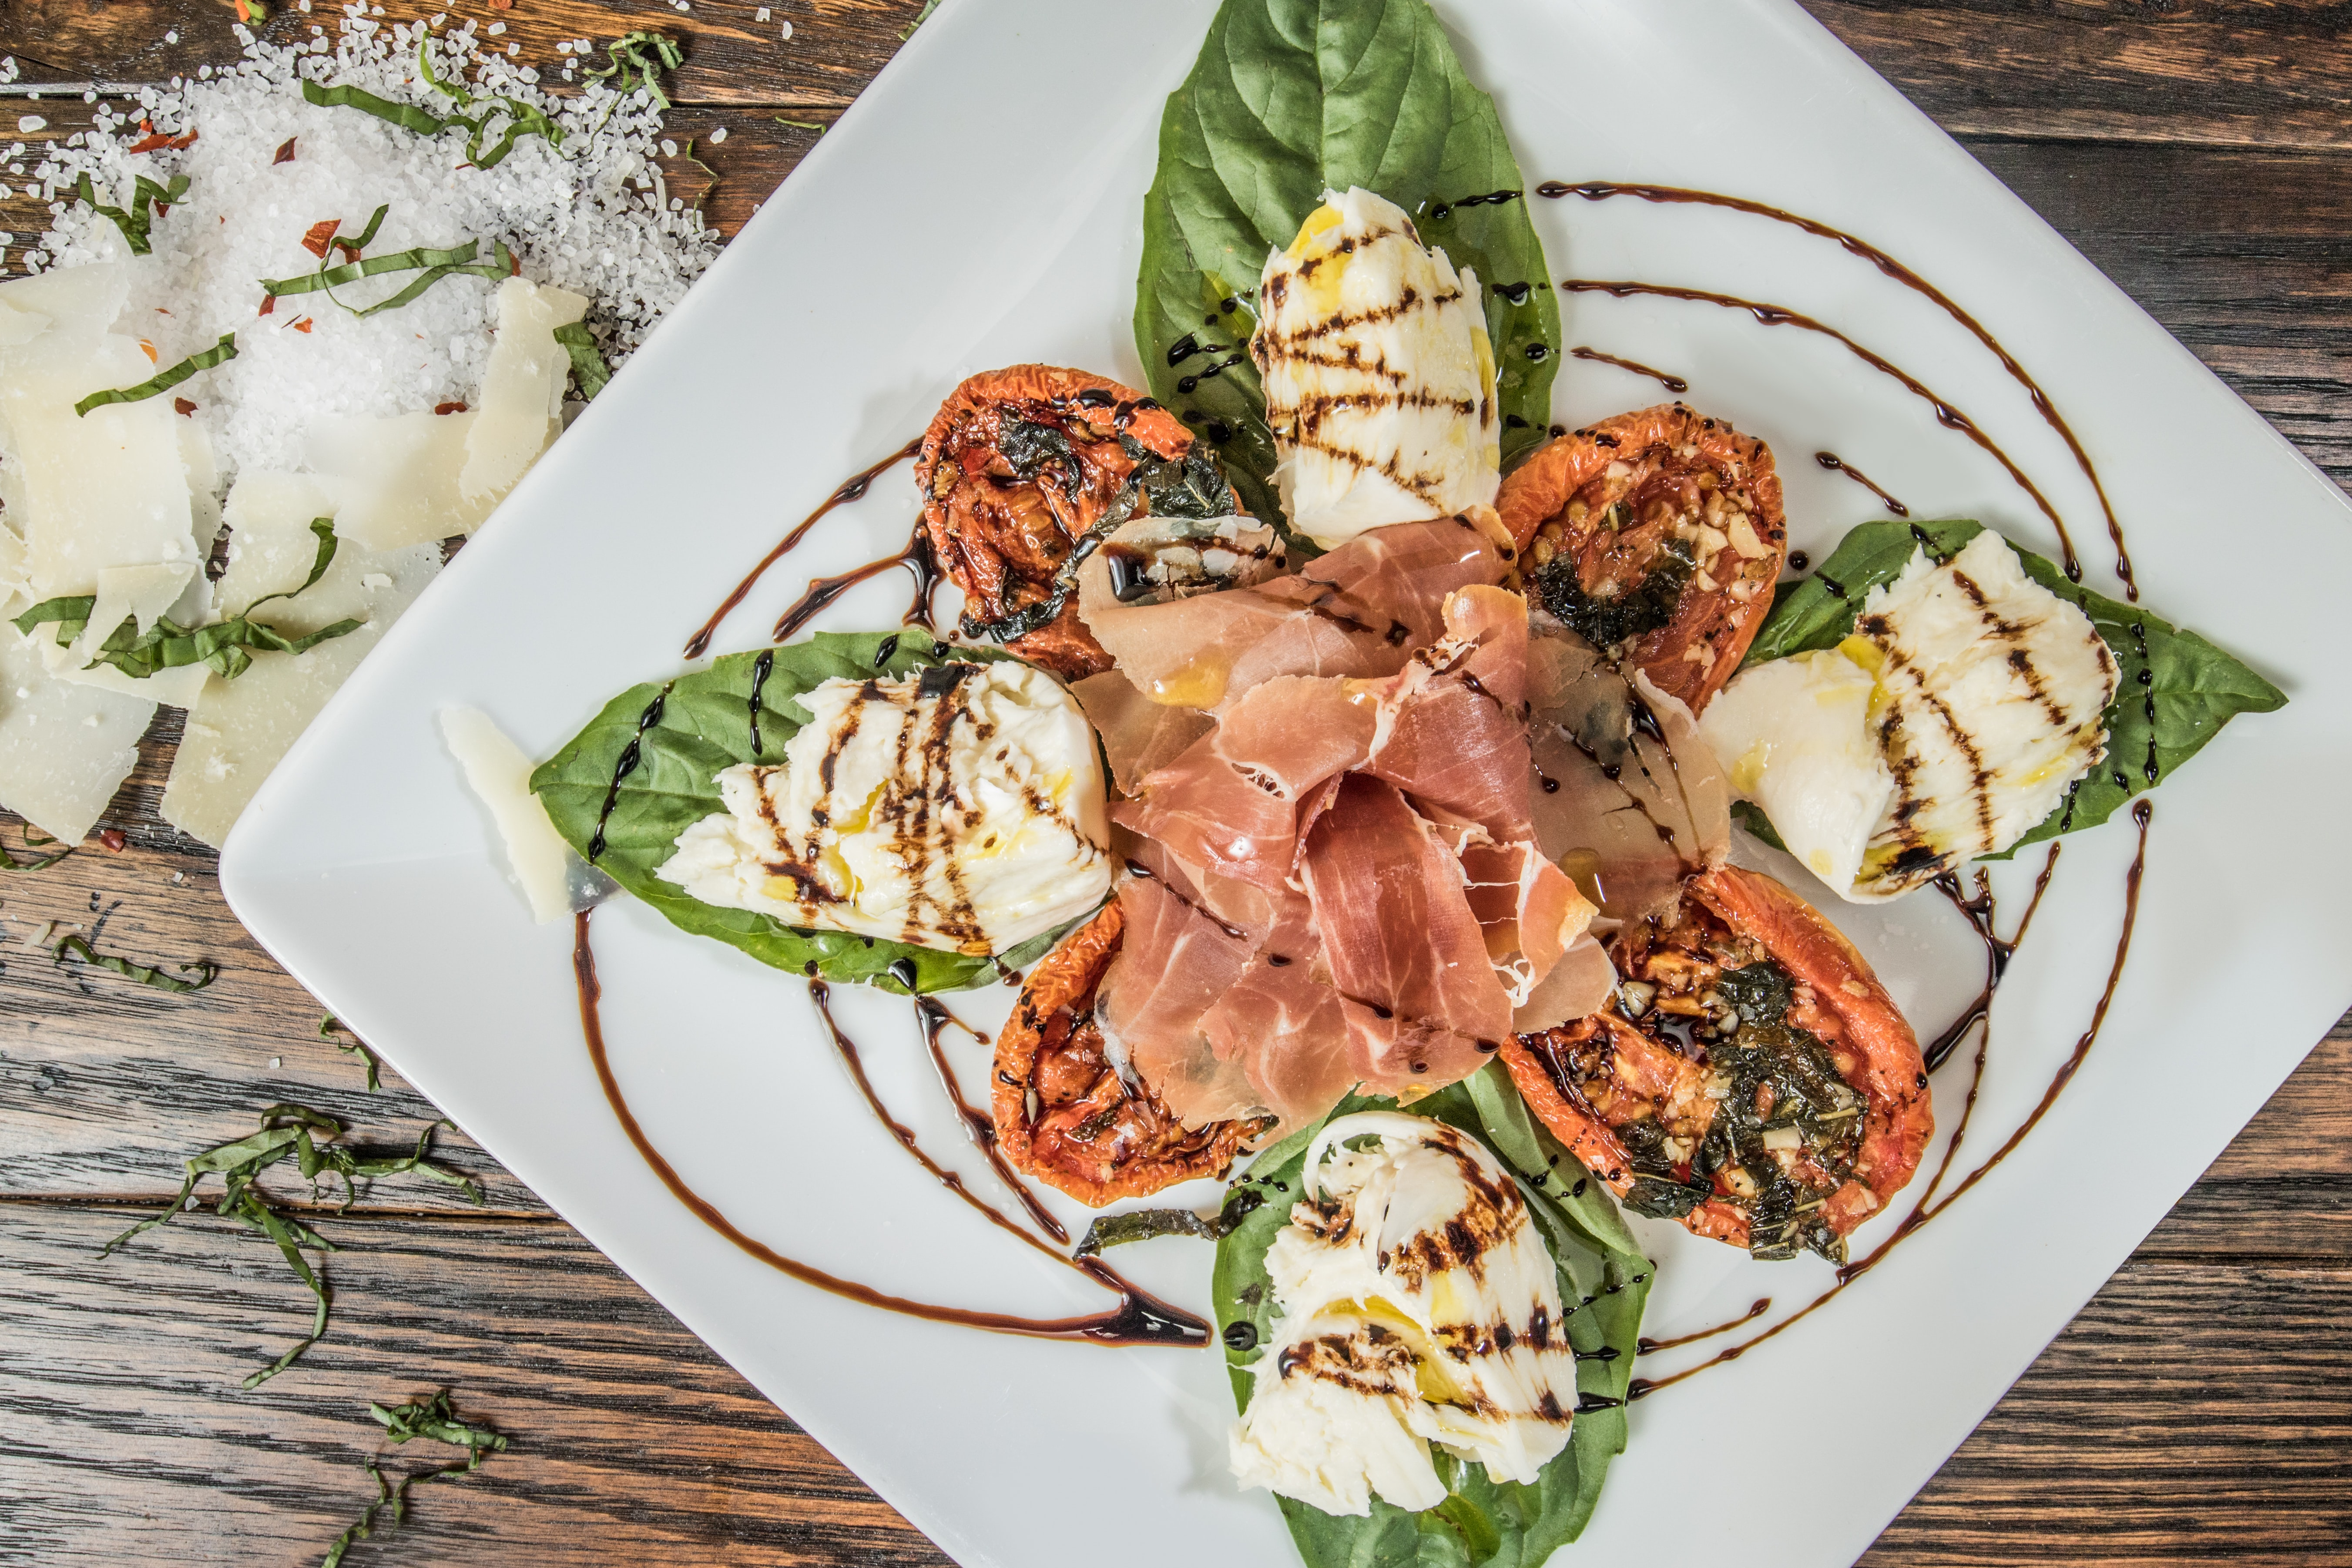 Italian salad with basil leaves, pancetta, grilled tomatoes, and cheese